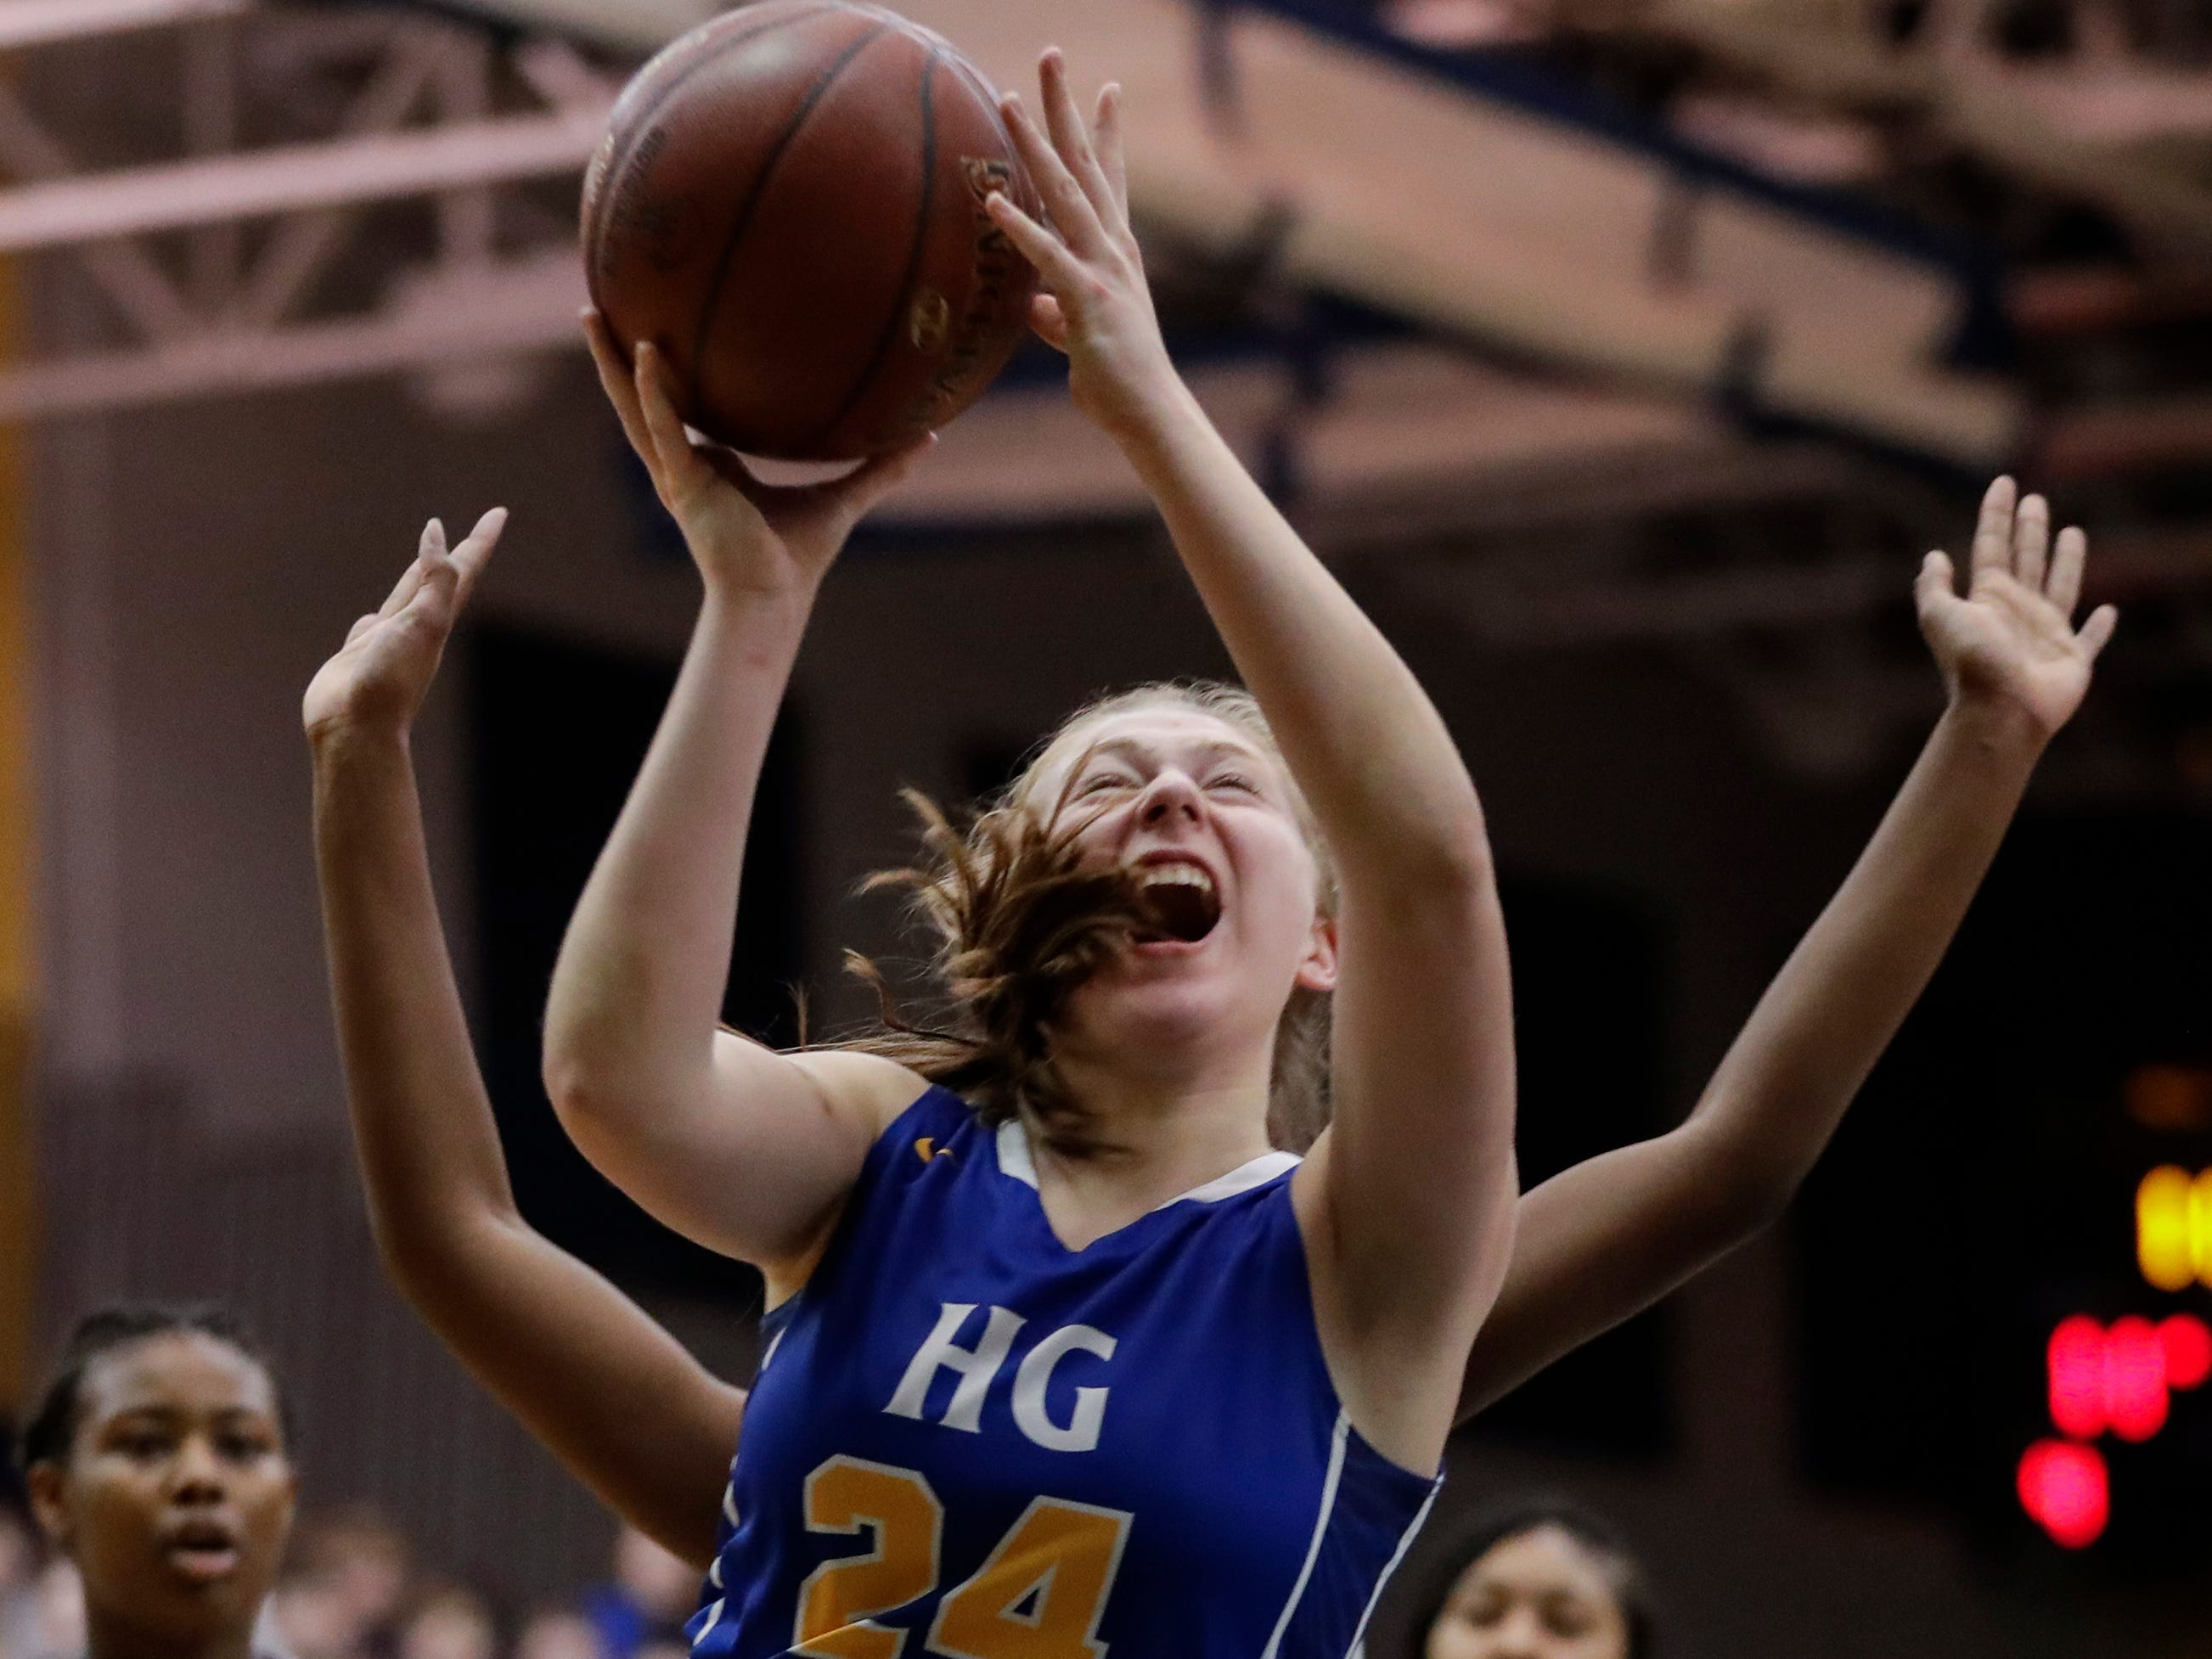 Howards Grove's Kayla Bender (24) shoots against Milwaukee Academy of Science during a WIAA Division 4 sectional championship game at Sheboygan North High School Saturday, March 2, 2019, in Sheboygan, Wis. Joshua Clark/USA TODAY NETWORK-Wisconsin